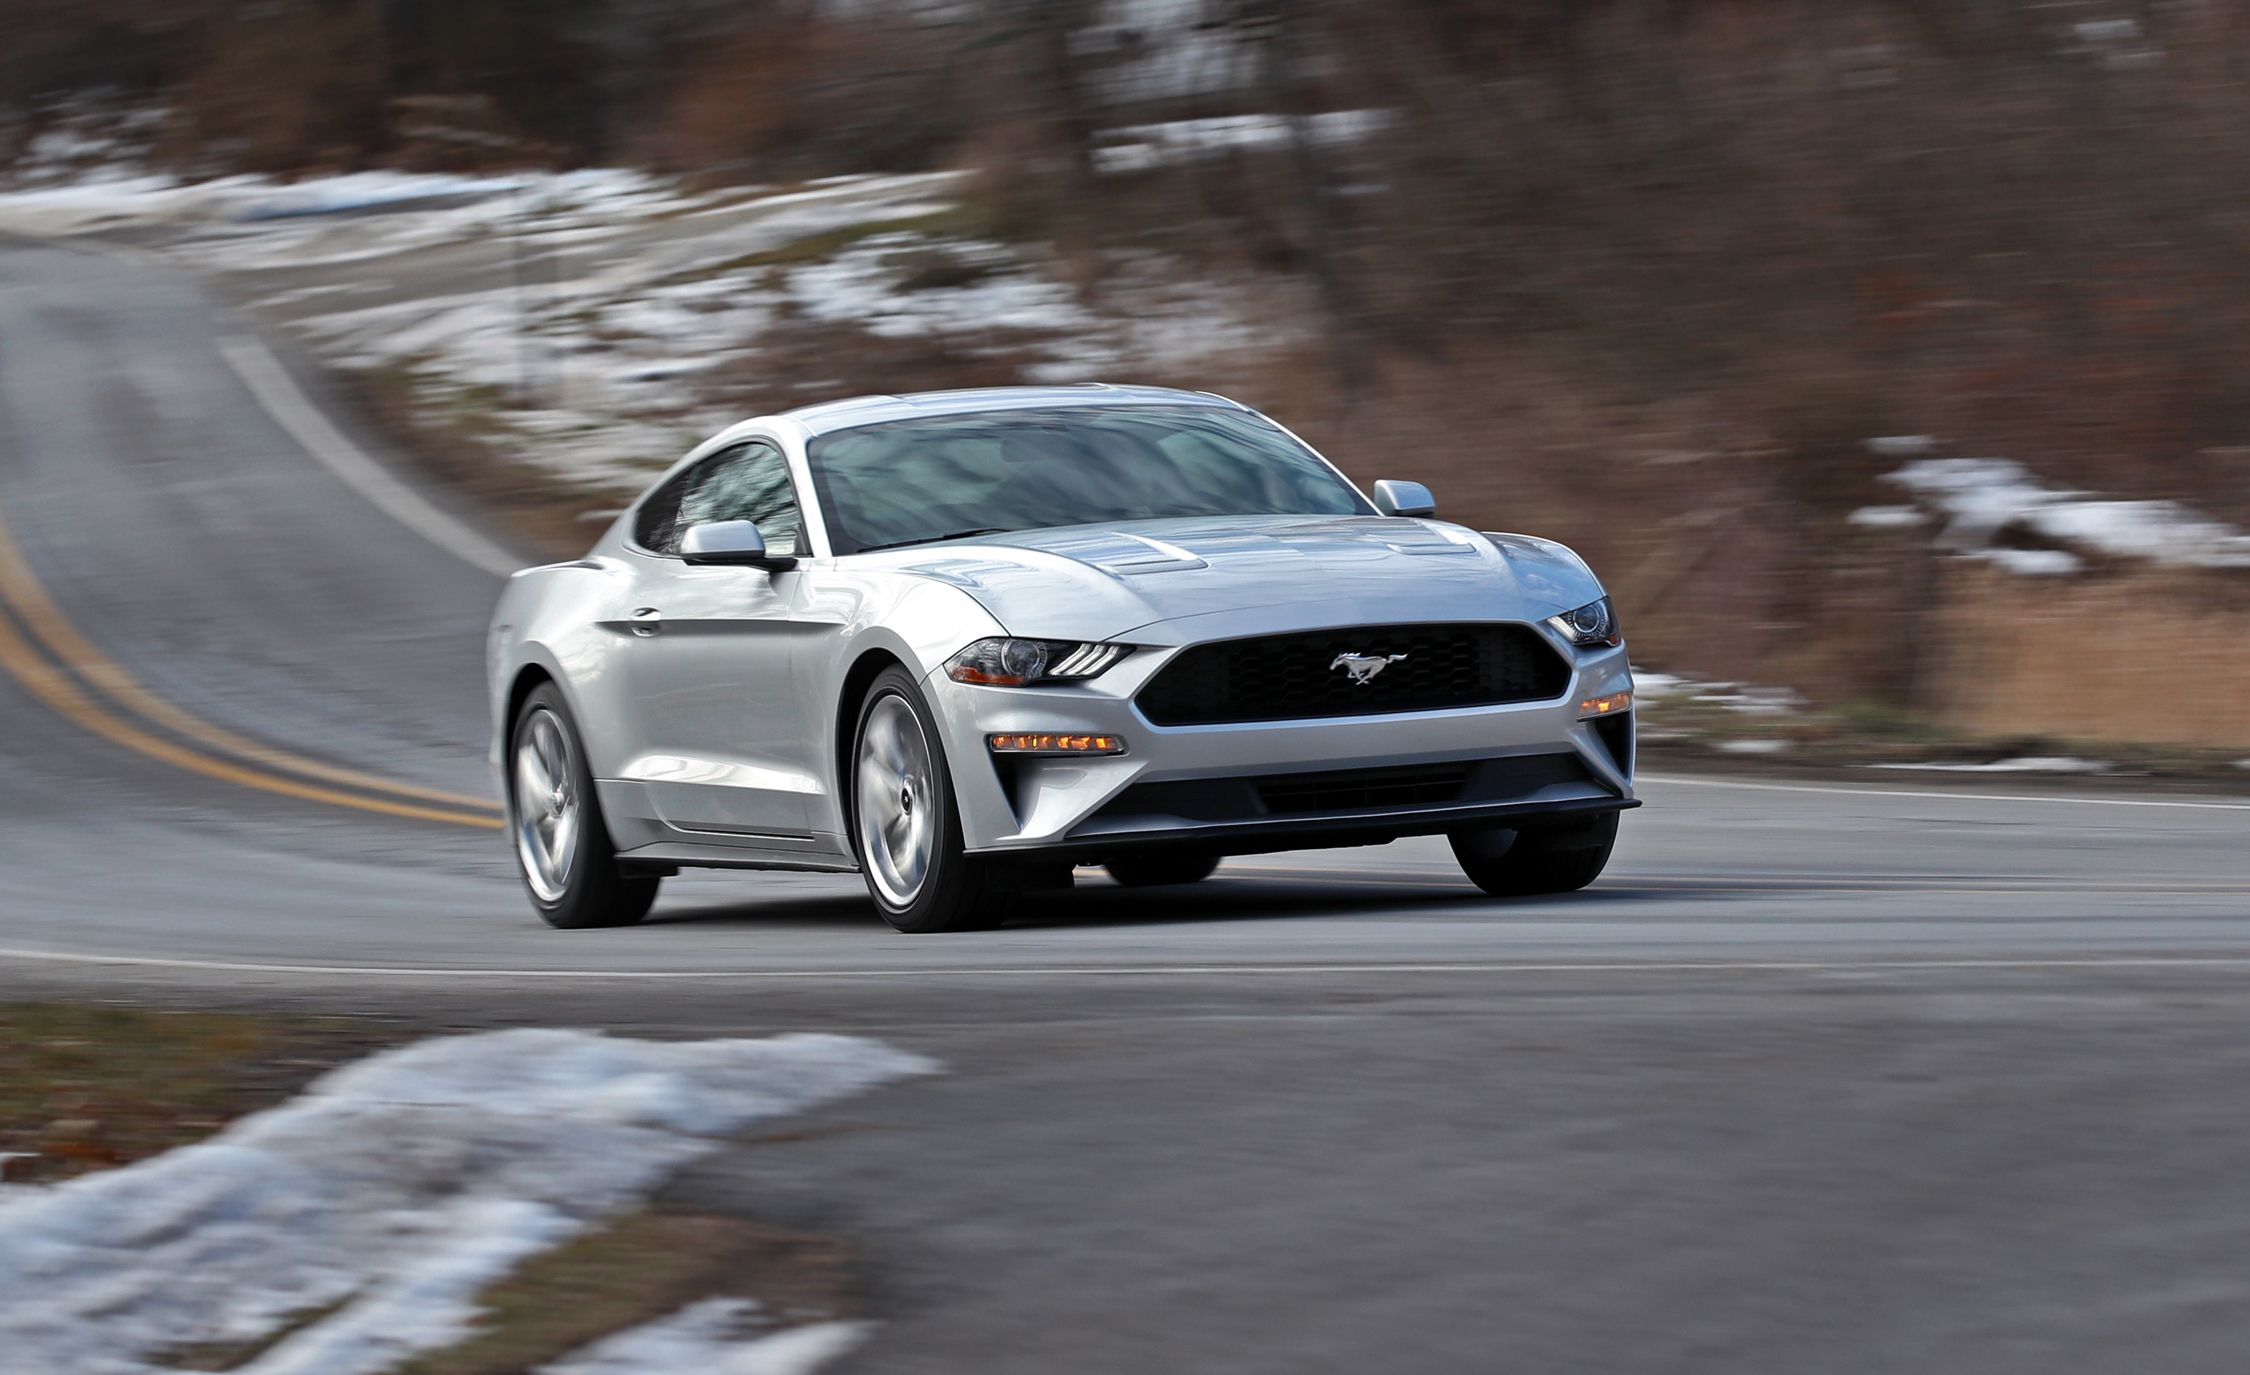 2018 Ford Mustang 2 3l Ecoboost Manual Test Does More Torque Help